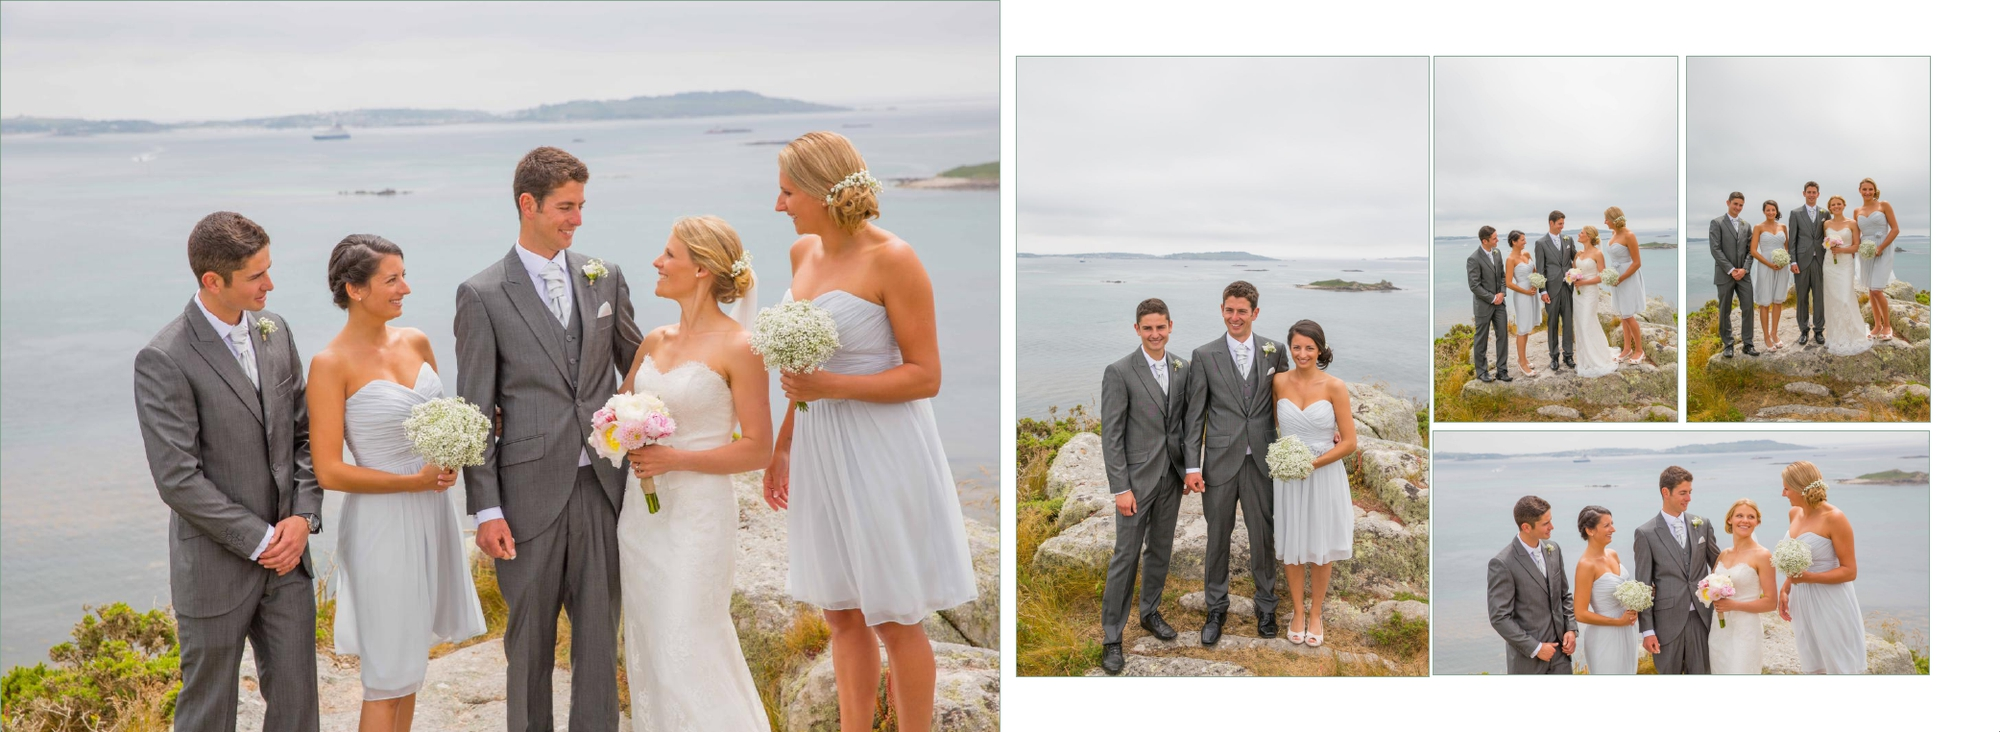 Bridal party wedding photography isles of scillys